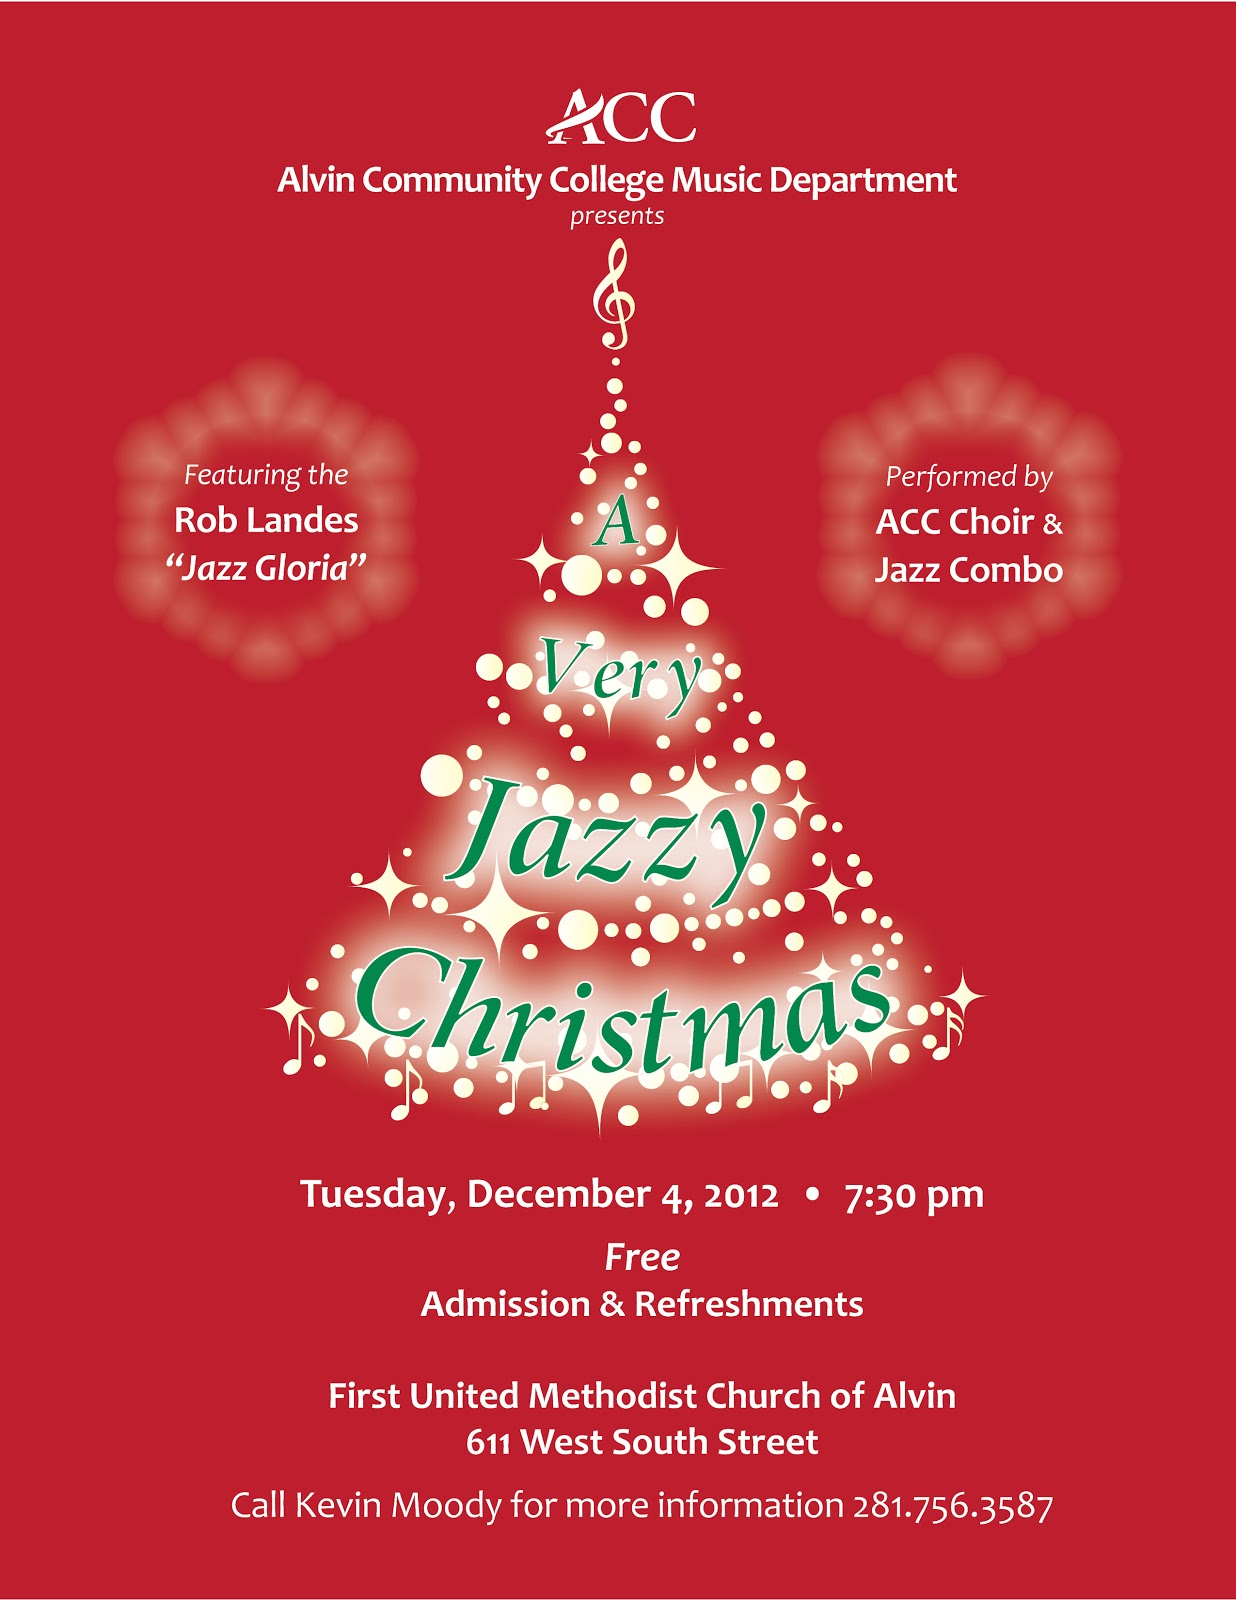 acc campus news acc jazzy christmas concert the alvin community choir will be performing a christmas concert a jazz flair on 4 at the alvin united methodist church